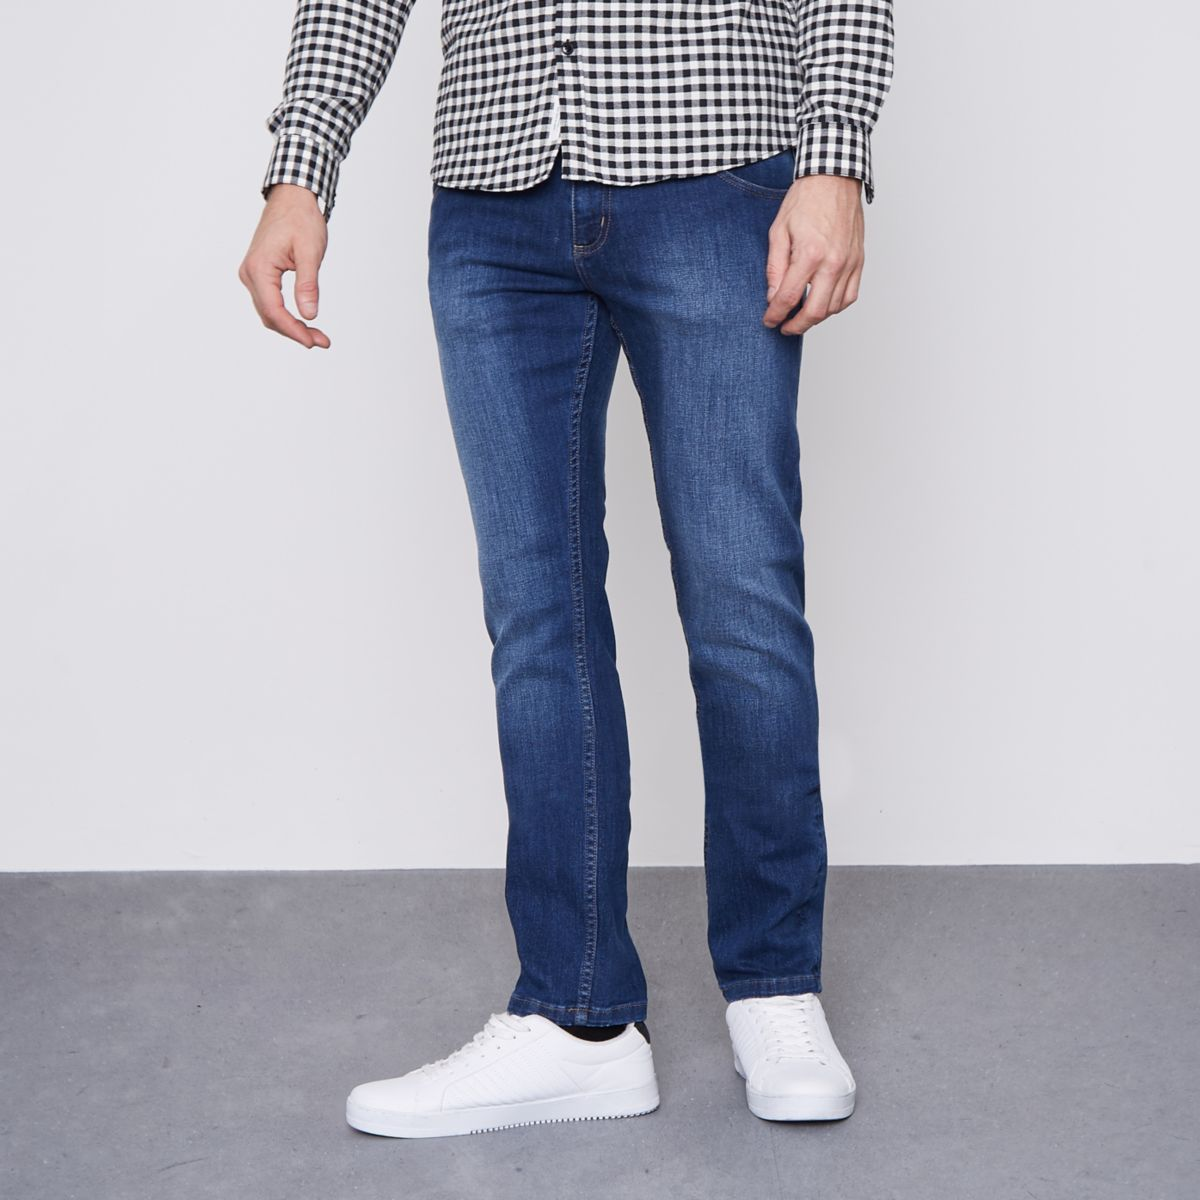 Discount New Arrival River Island Mens Monkee Genes dark Blue slim fit jeans Monkee Genes Grey Outlet Store Online In China Online D7C296C4v